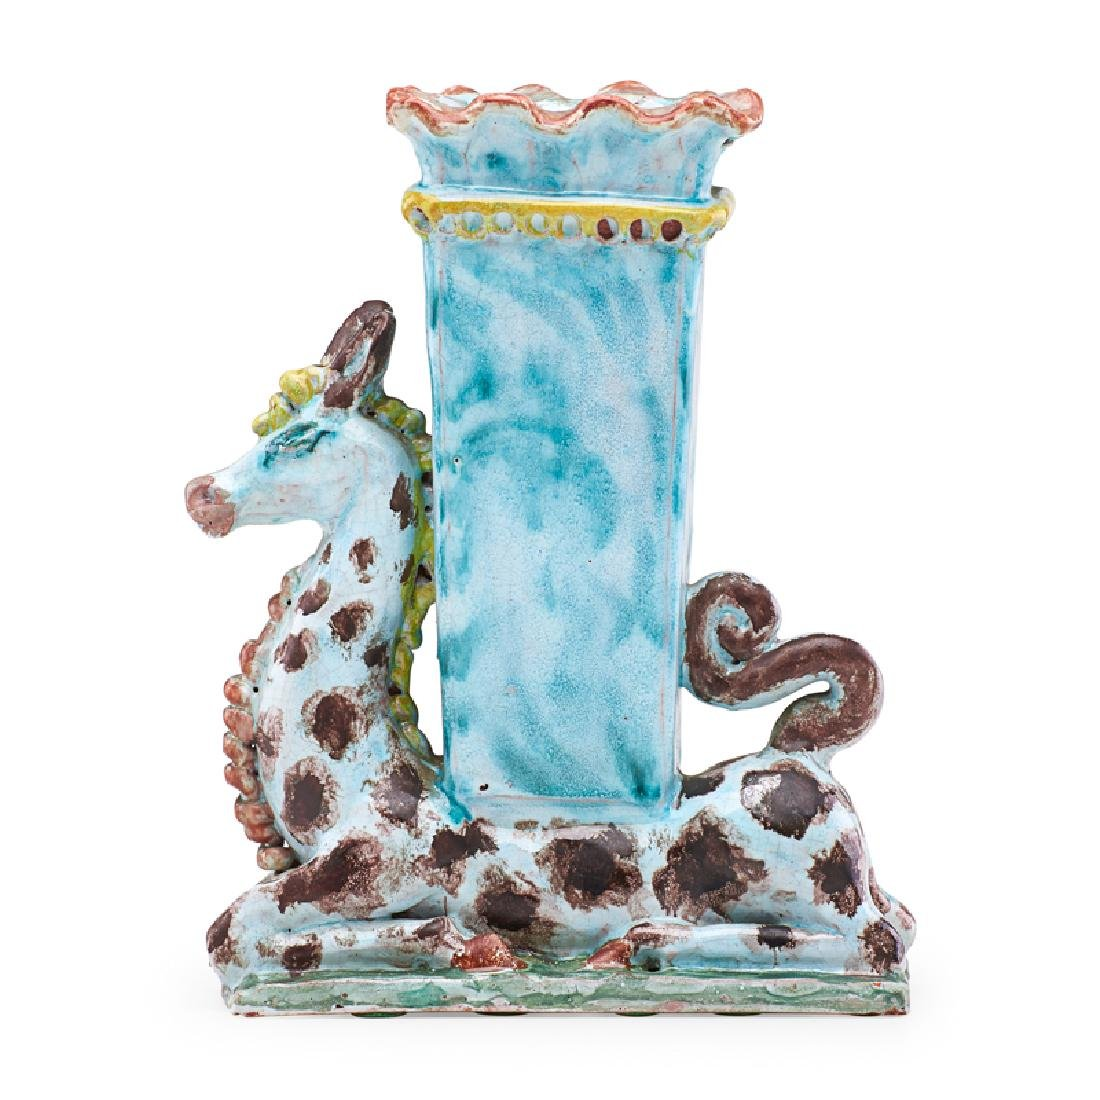 RENE BUTHAUD Vase with giraffe - 2